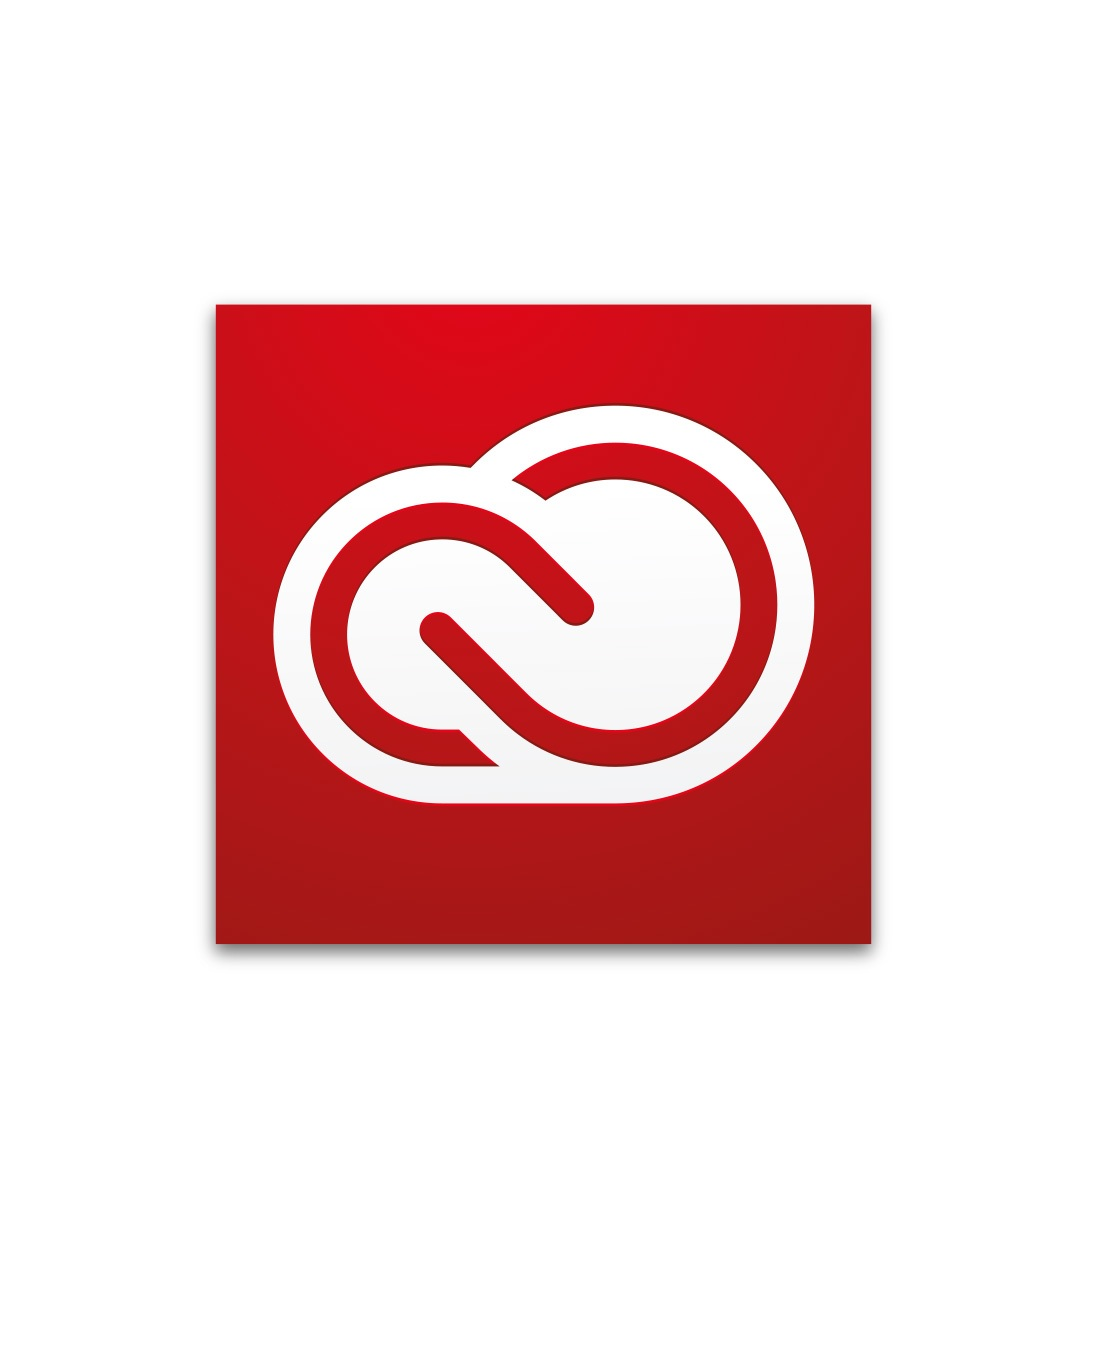 1 Jahr Subscription Renewal für Adobe Creative Cloud for Teams All Apps VIP Lizenz Download Education Win/Mac, Multilingual (1-9 Lizenzen) (65272482BB01A12)